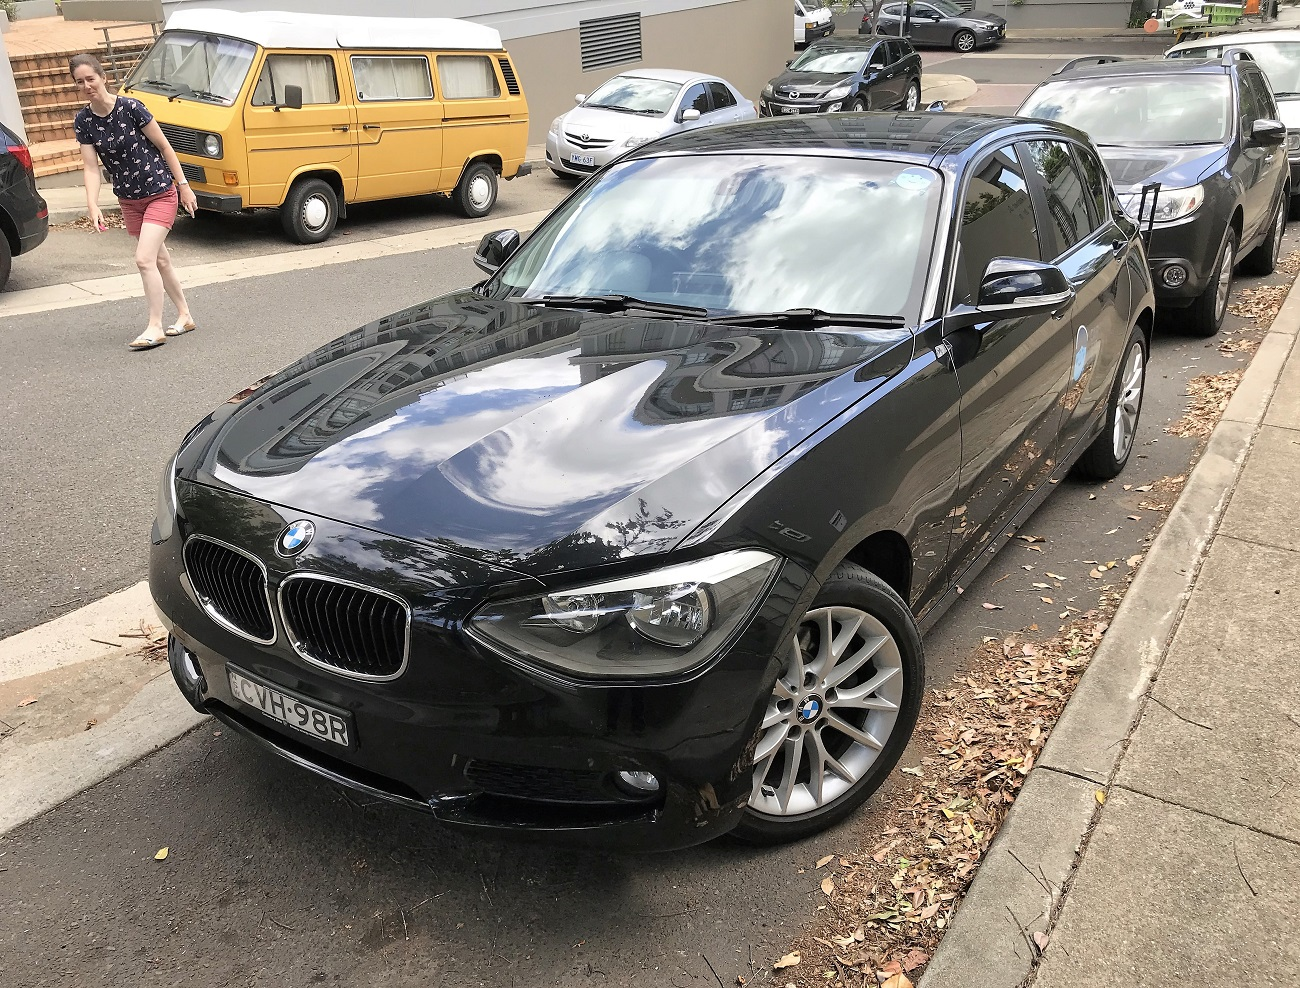 Picture of kathryn's 2013 BMW 118i